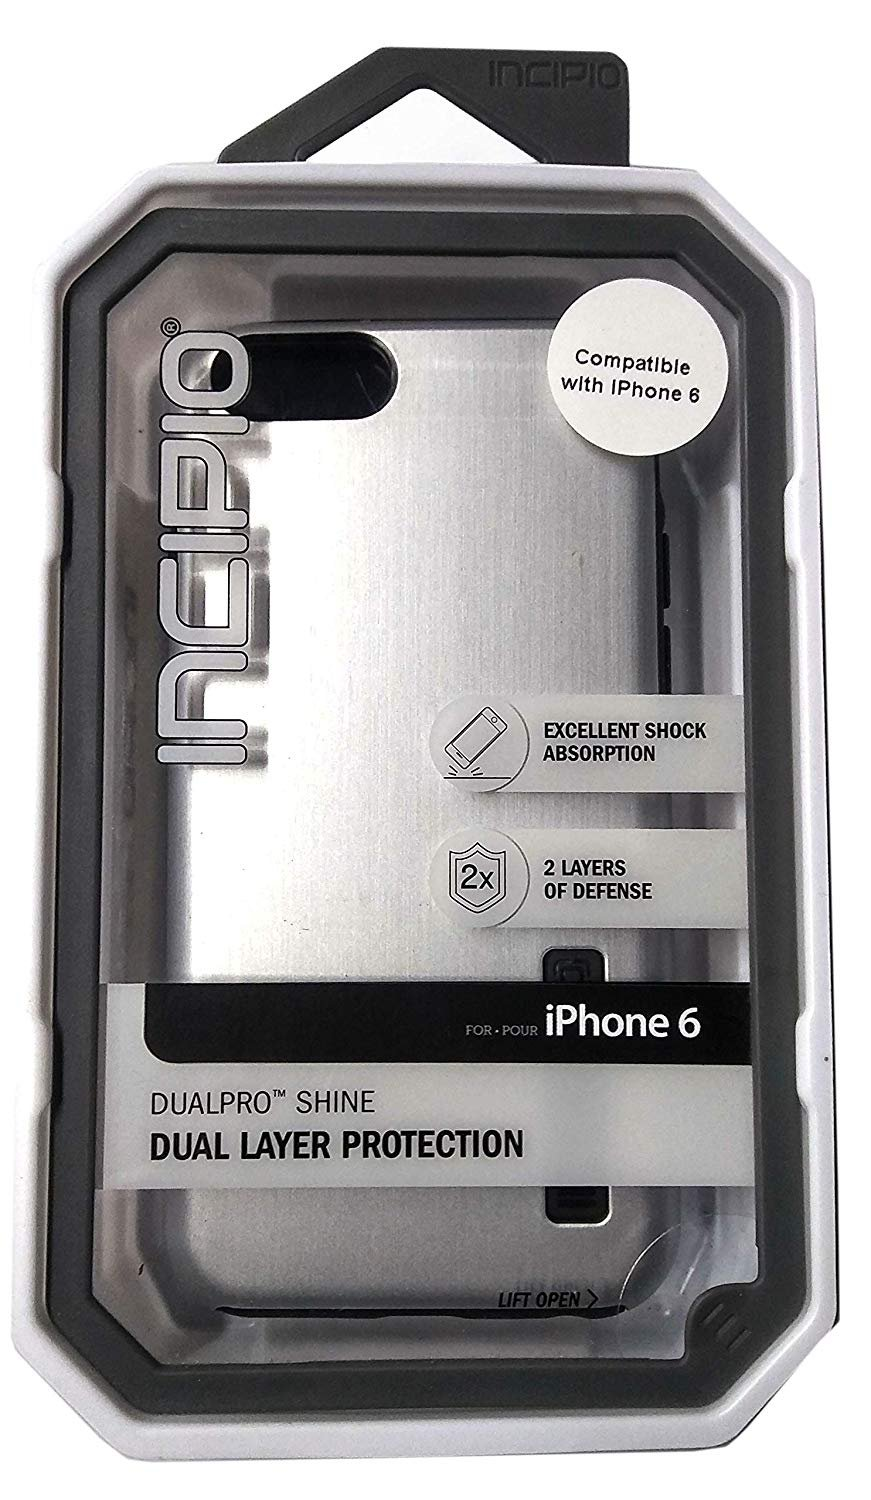 DualPro - Shine - Dual Layer Protection Hard-Shell Case Apple iPhone 6 - Gray/Black